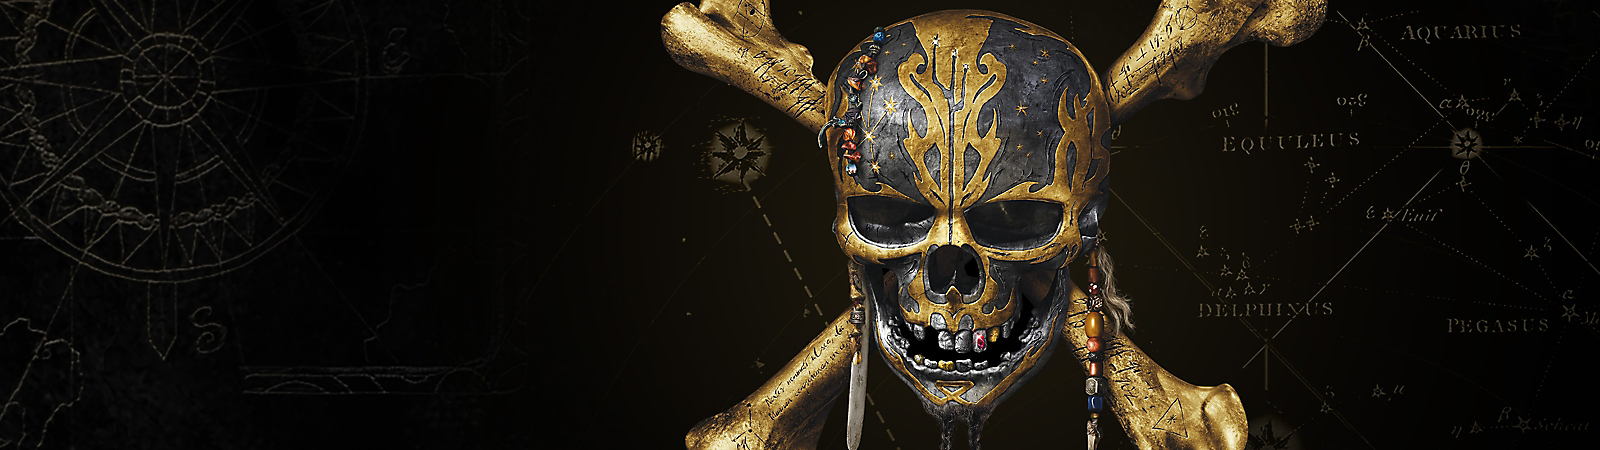 Background image of Pirates of the Caribbean: Dead Men Tell No Tales